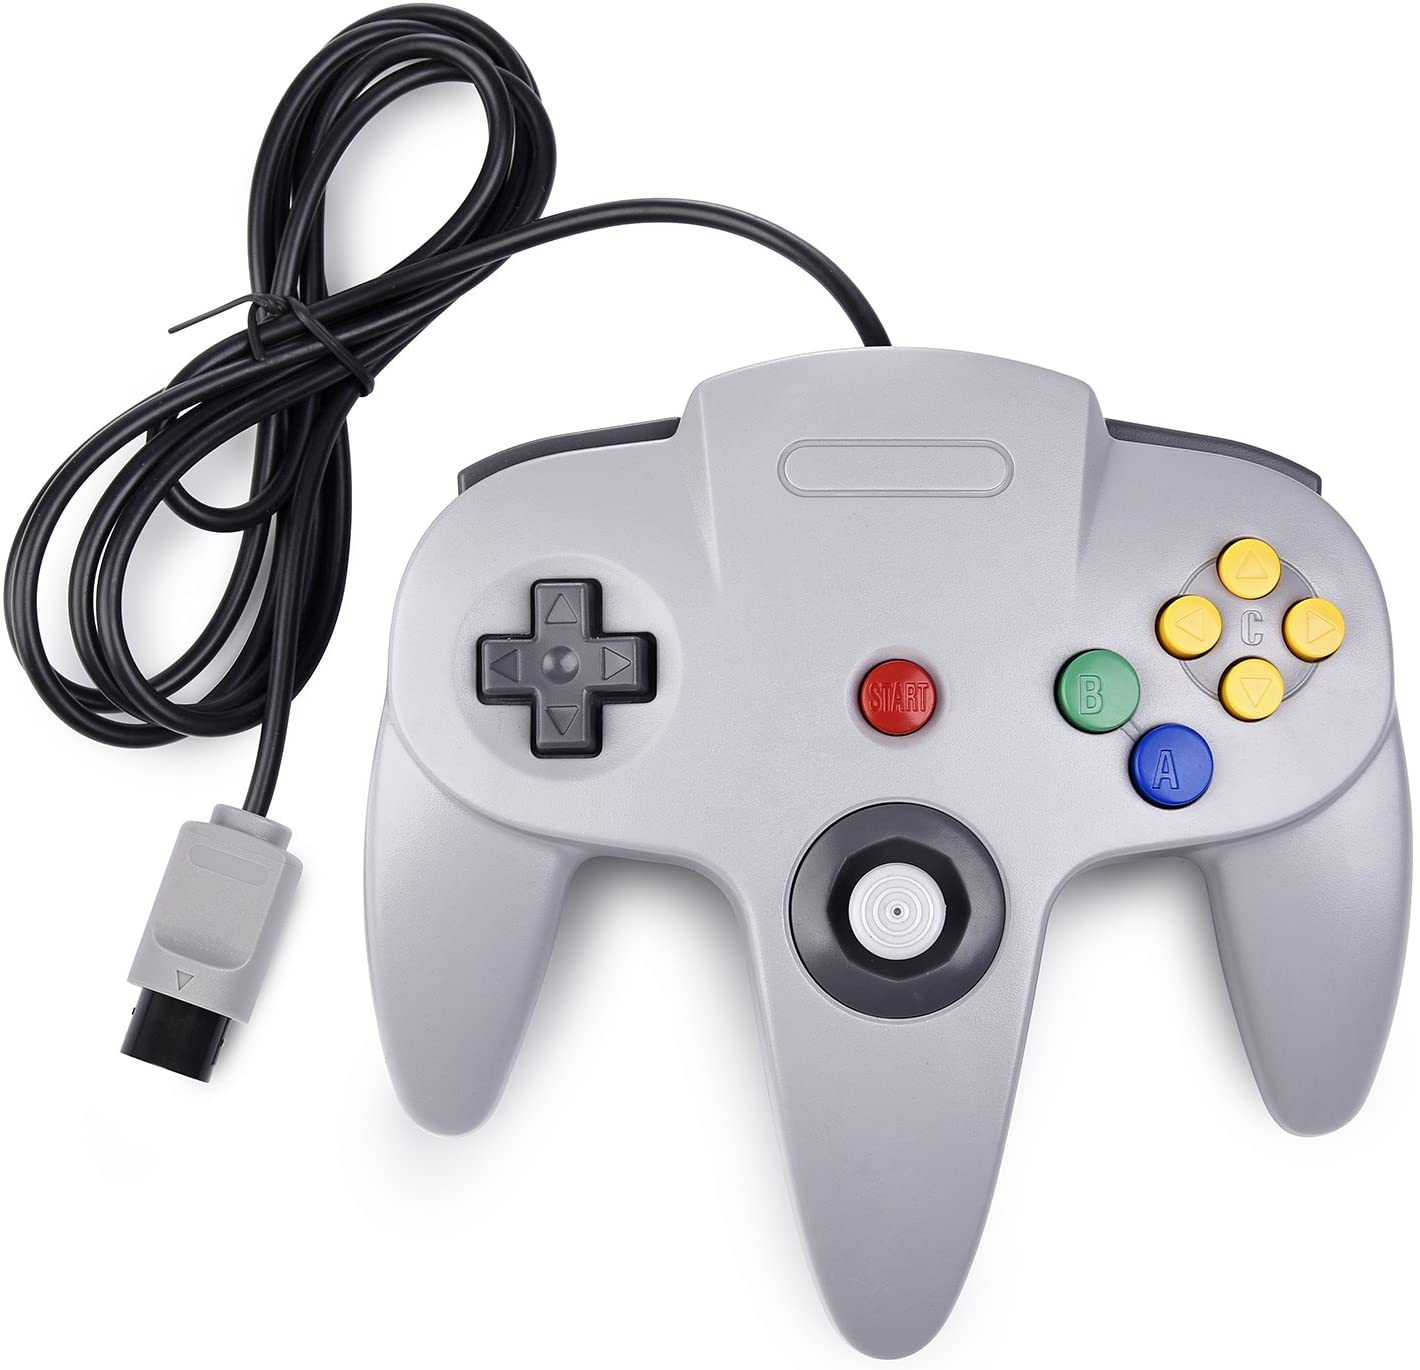 Classic N64 Controller,Retro Wired Game Pad Controller Joystick Compatible N64 System Video Games Console Gray